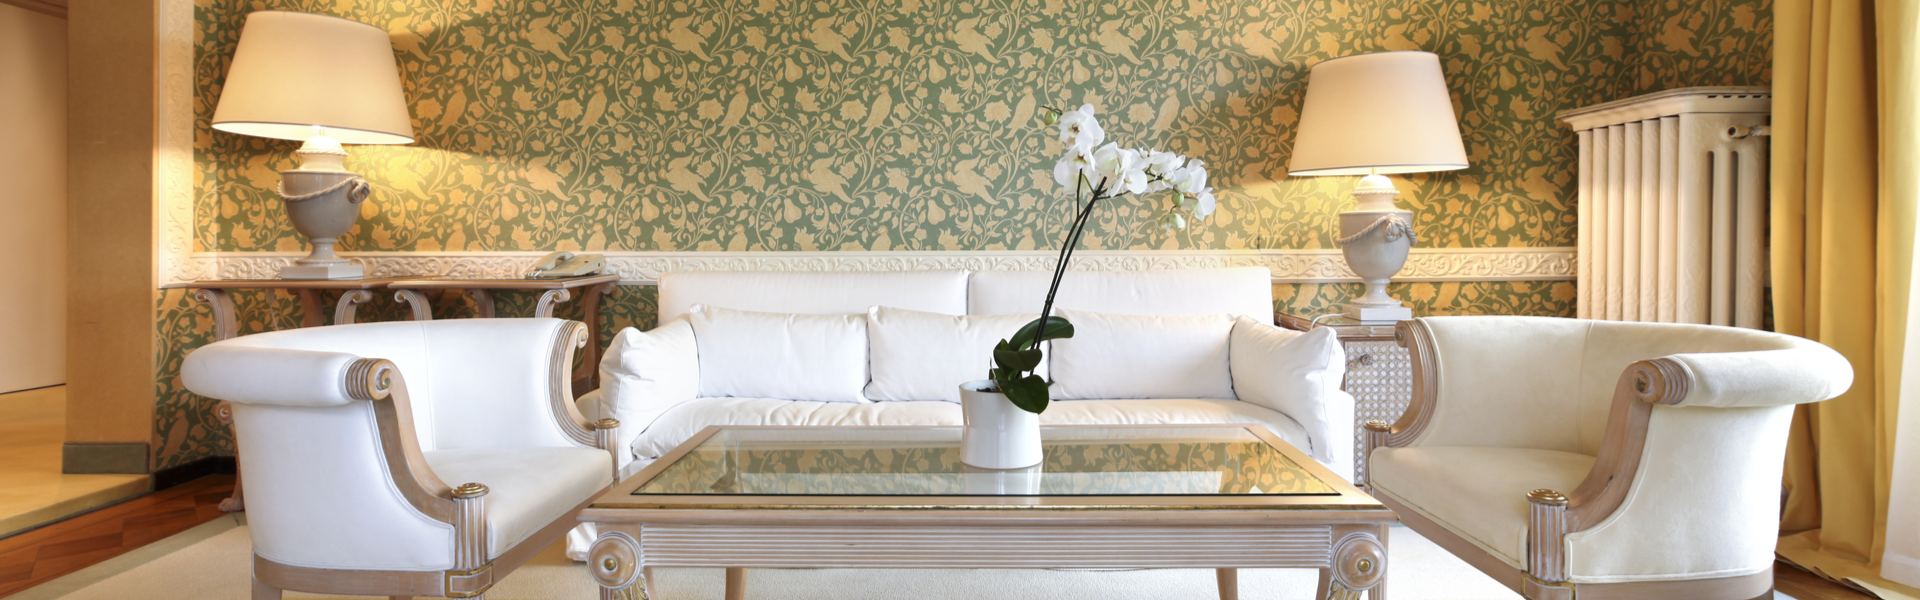 Spruce Up Your Little Living Room with These Helpful Tips